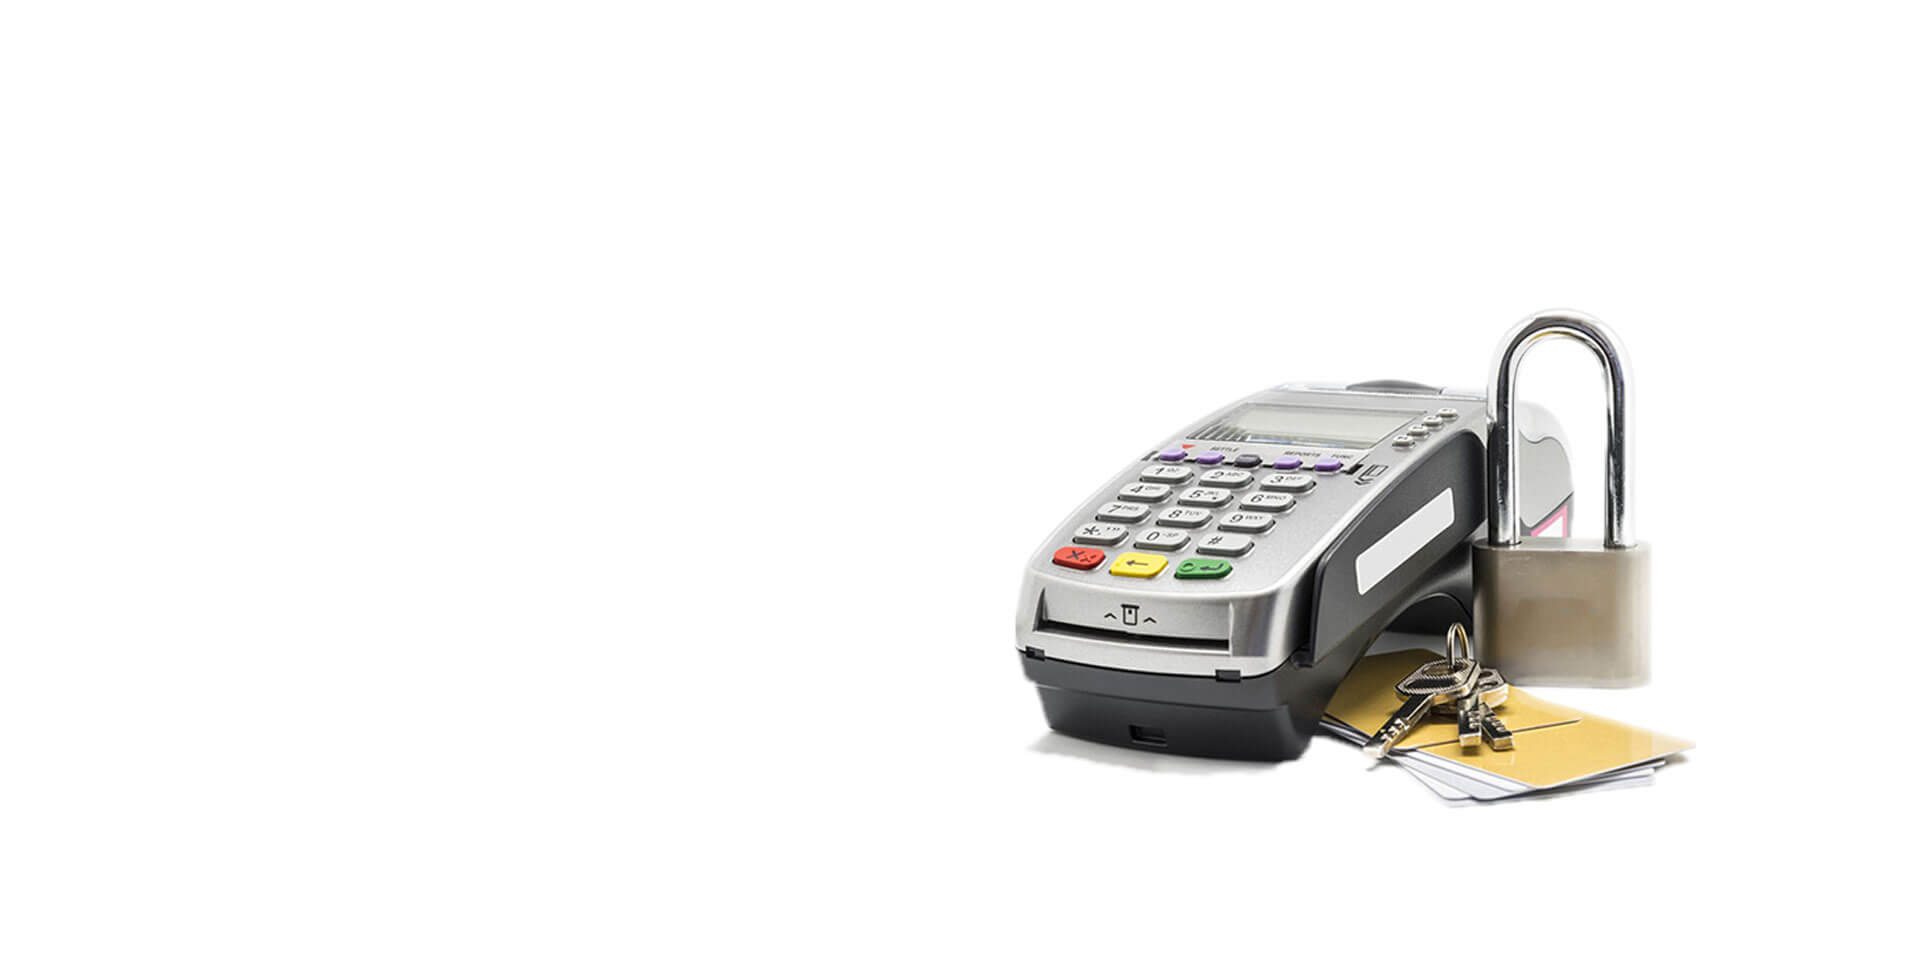 Introducing our EMV-certified omni-channel software solution for the Nordics